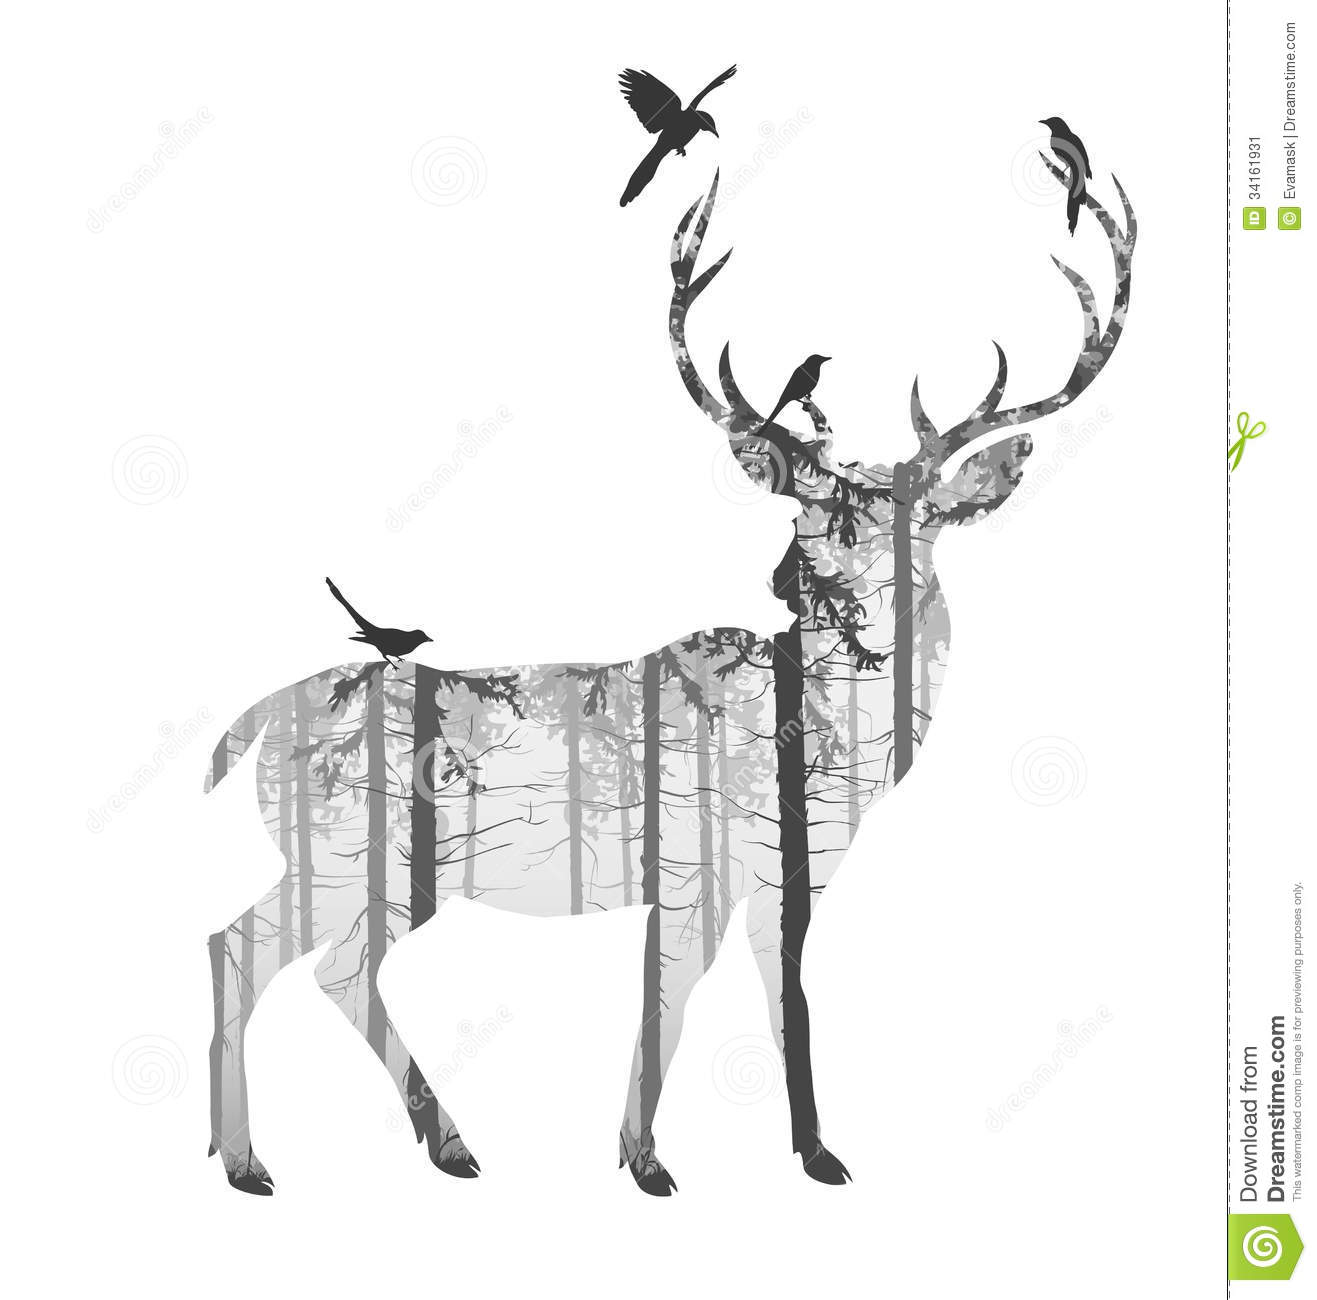 Deer illustration black and white - photo#3